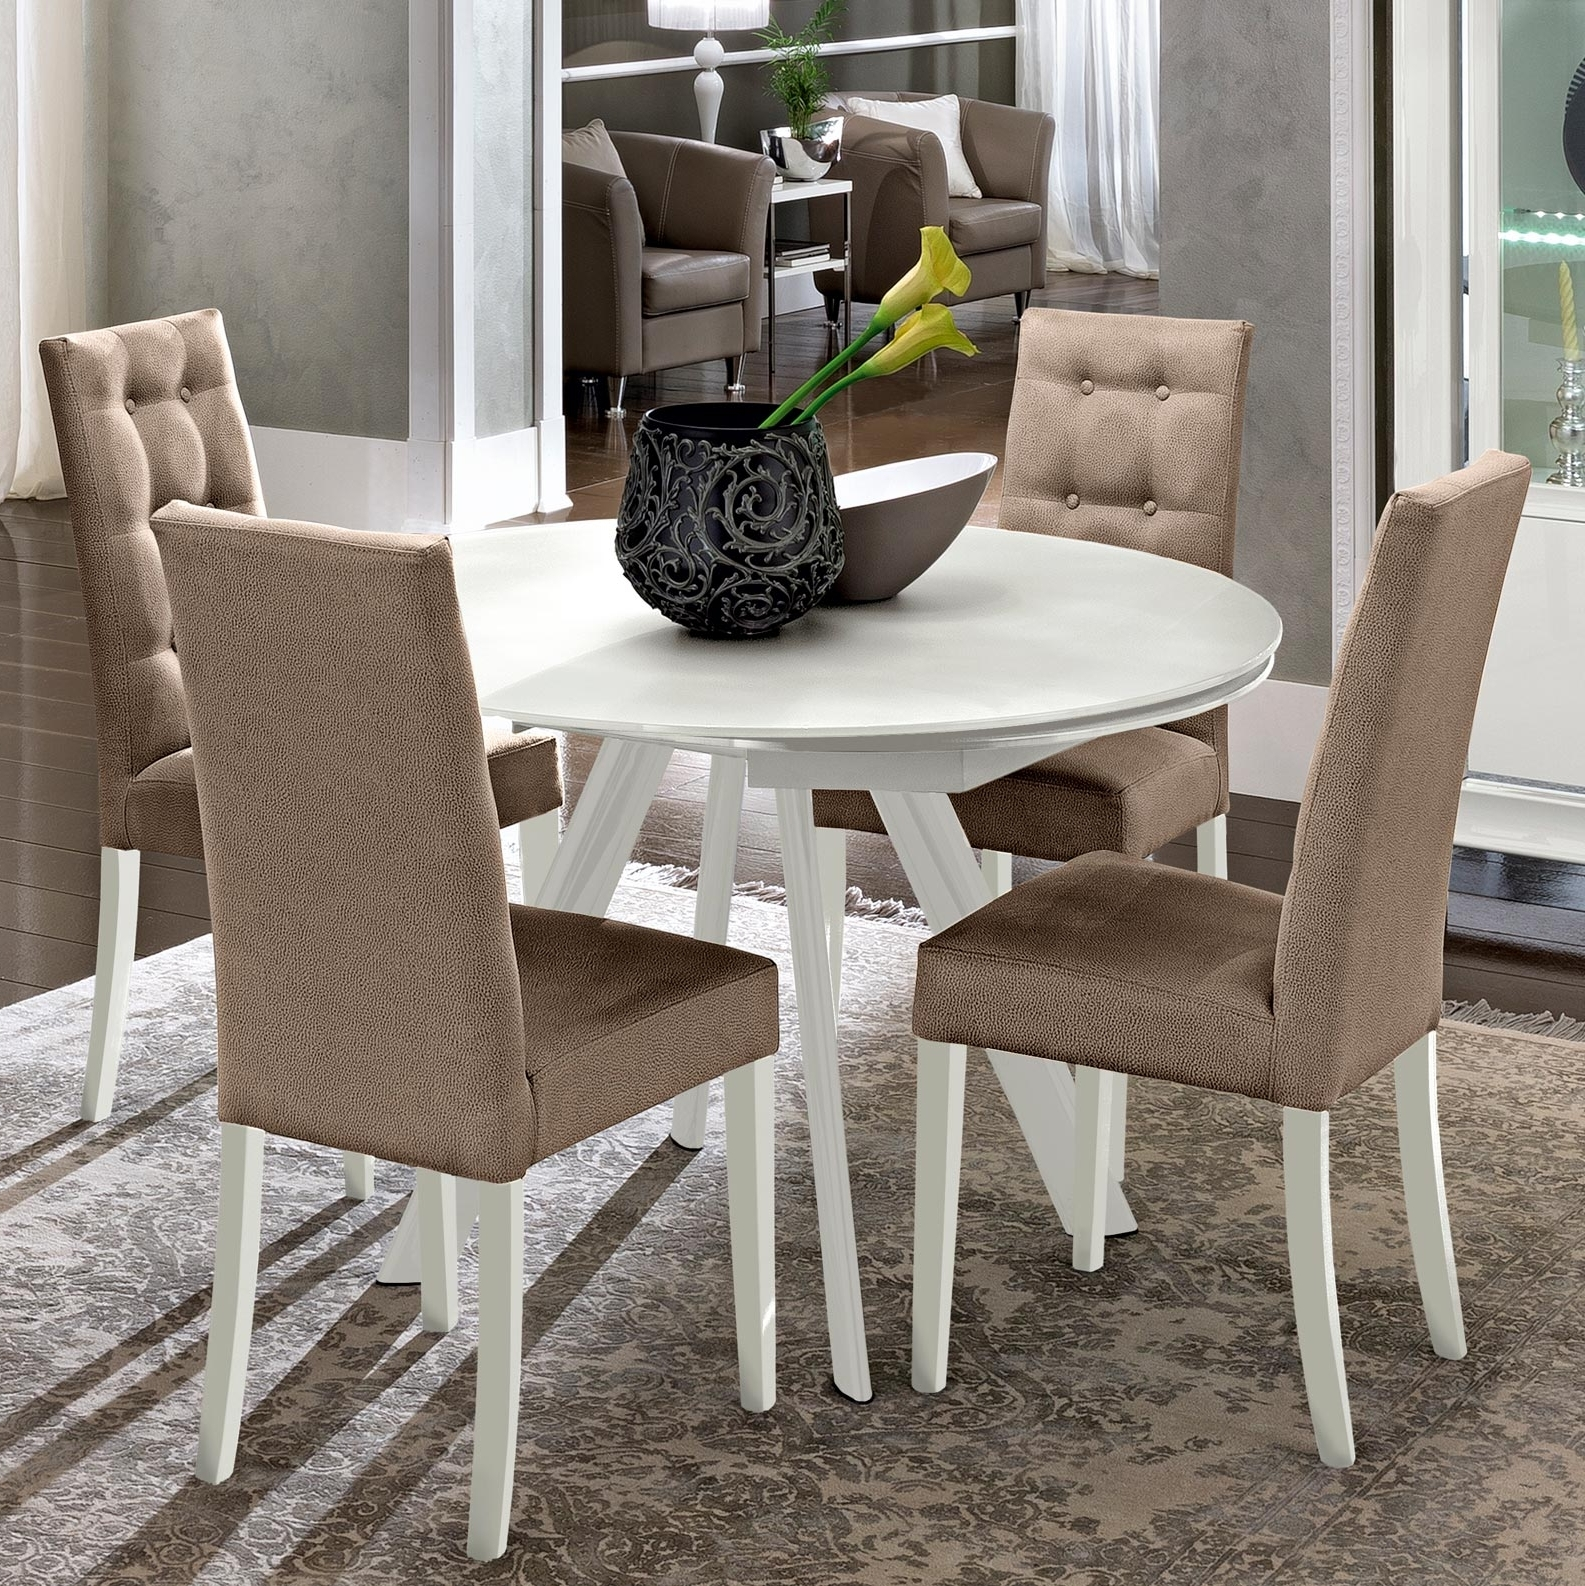 Caligula White High Gloss & Glass Round Extending Dining Table (View 20 of 25)